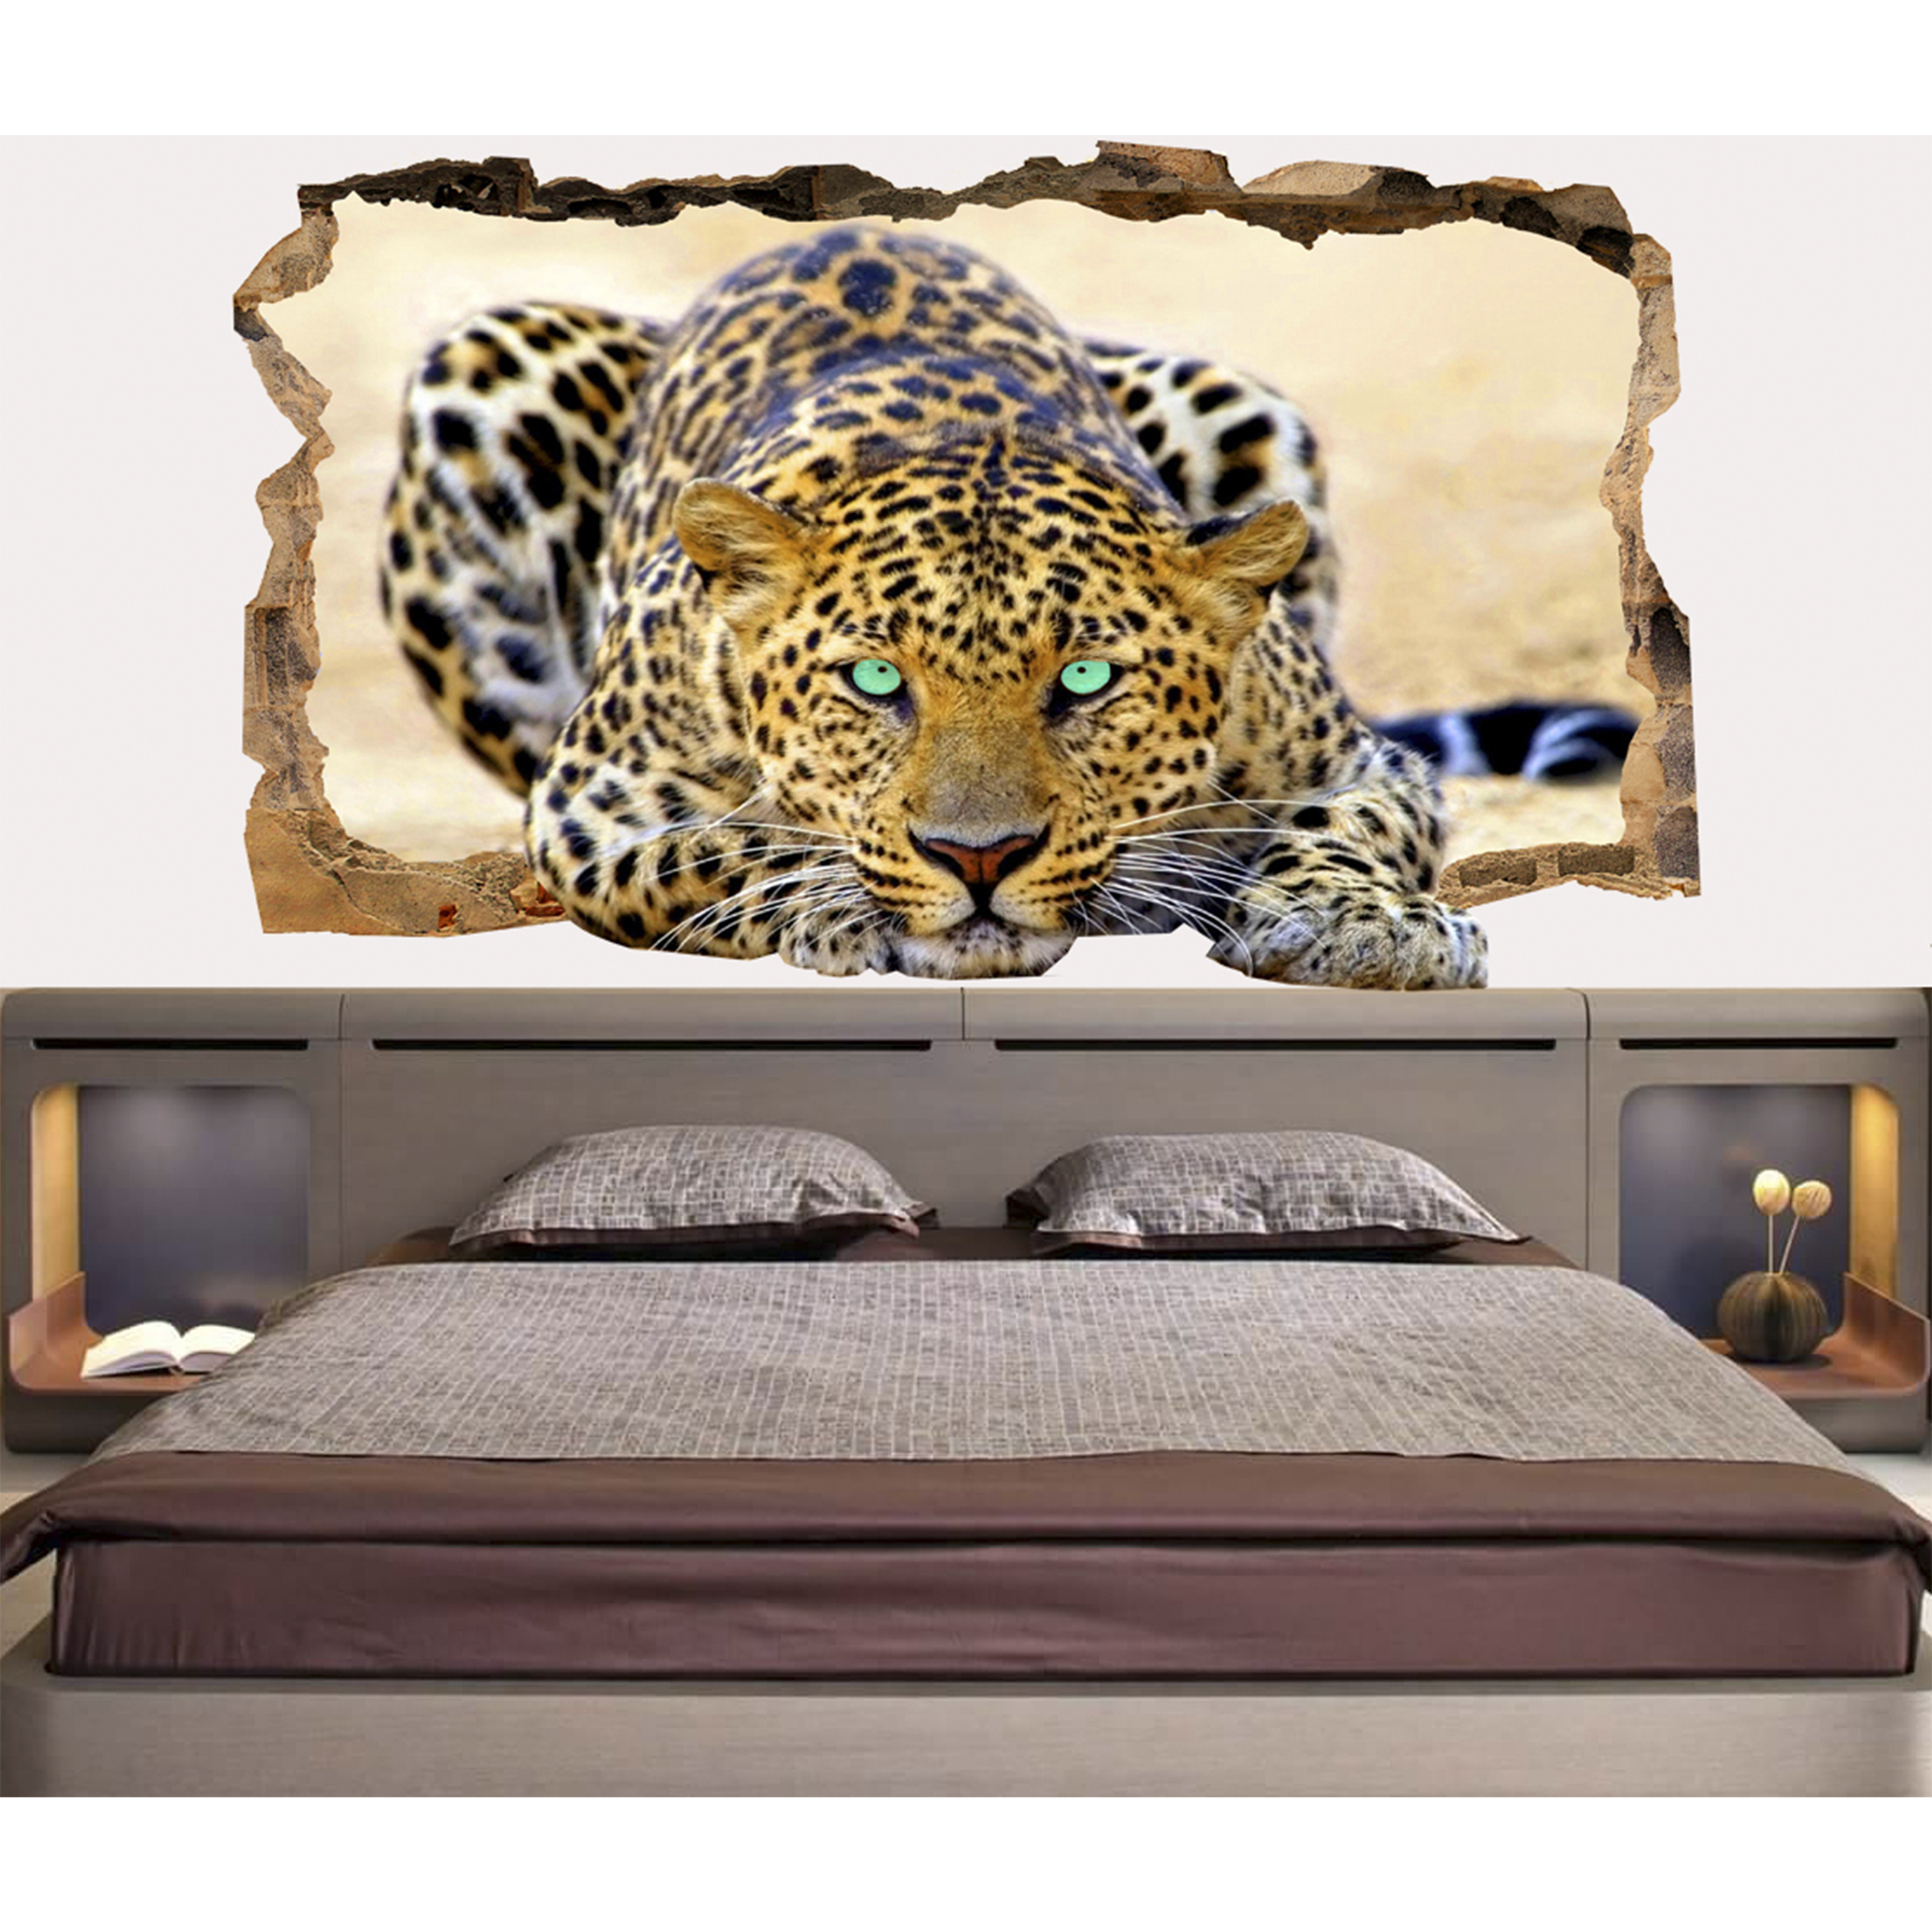 Wall Decoration Murale Startonight 3d Mural Wall Art Photo Decor Blue Eyes Leopard Amazing Dual View Wall Mural Wallpaper For Bedroom Animals Wall Paper Art Gift Large 47 24